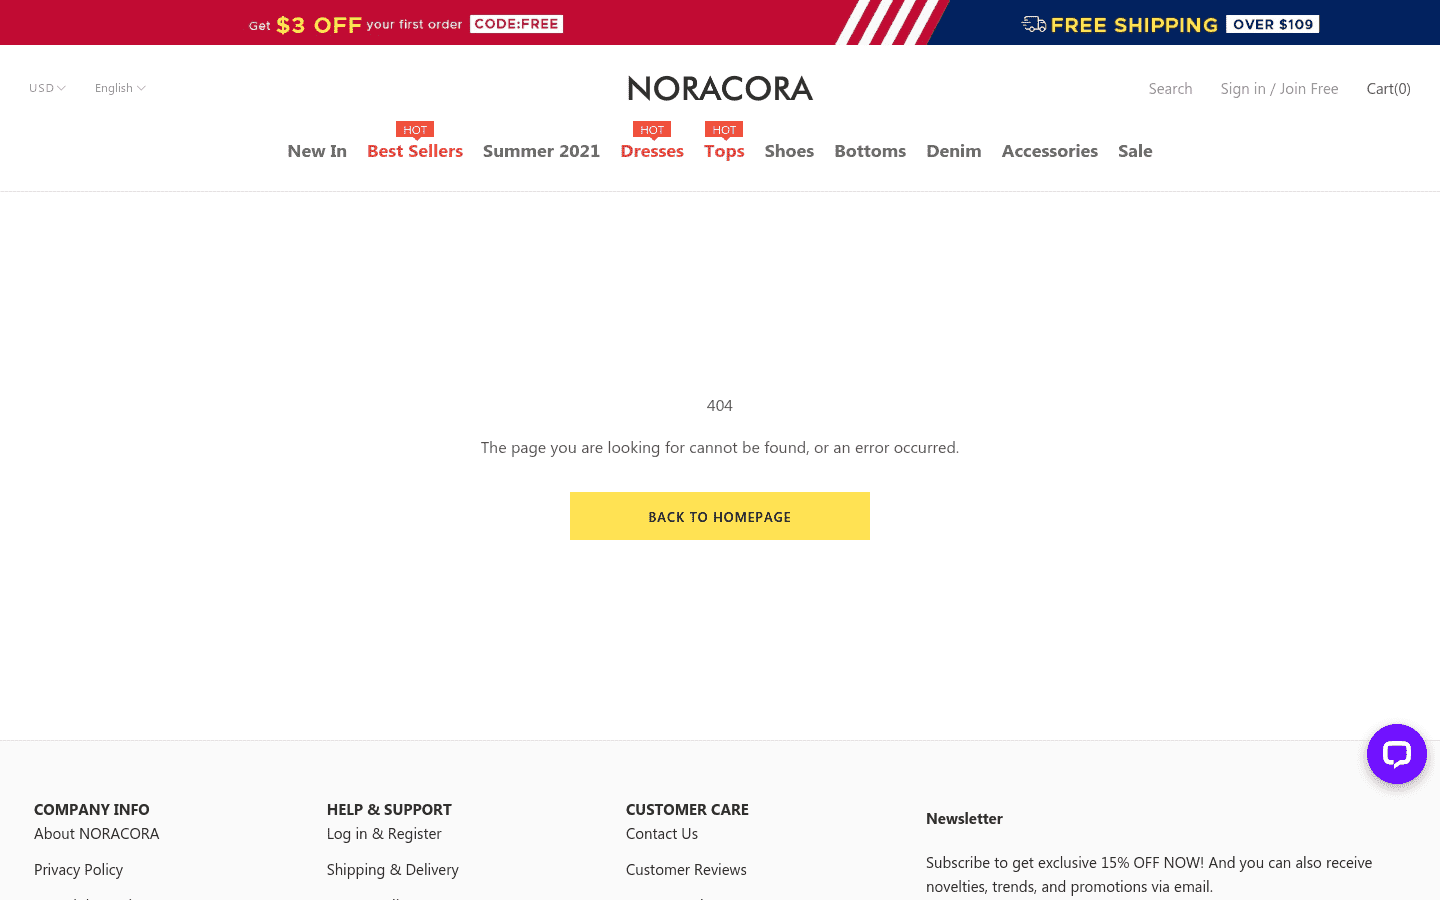 NORACORA reviews and complaints